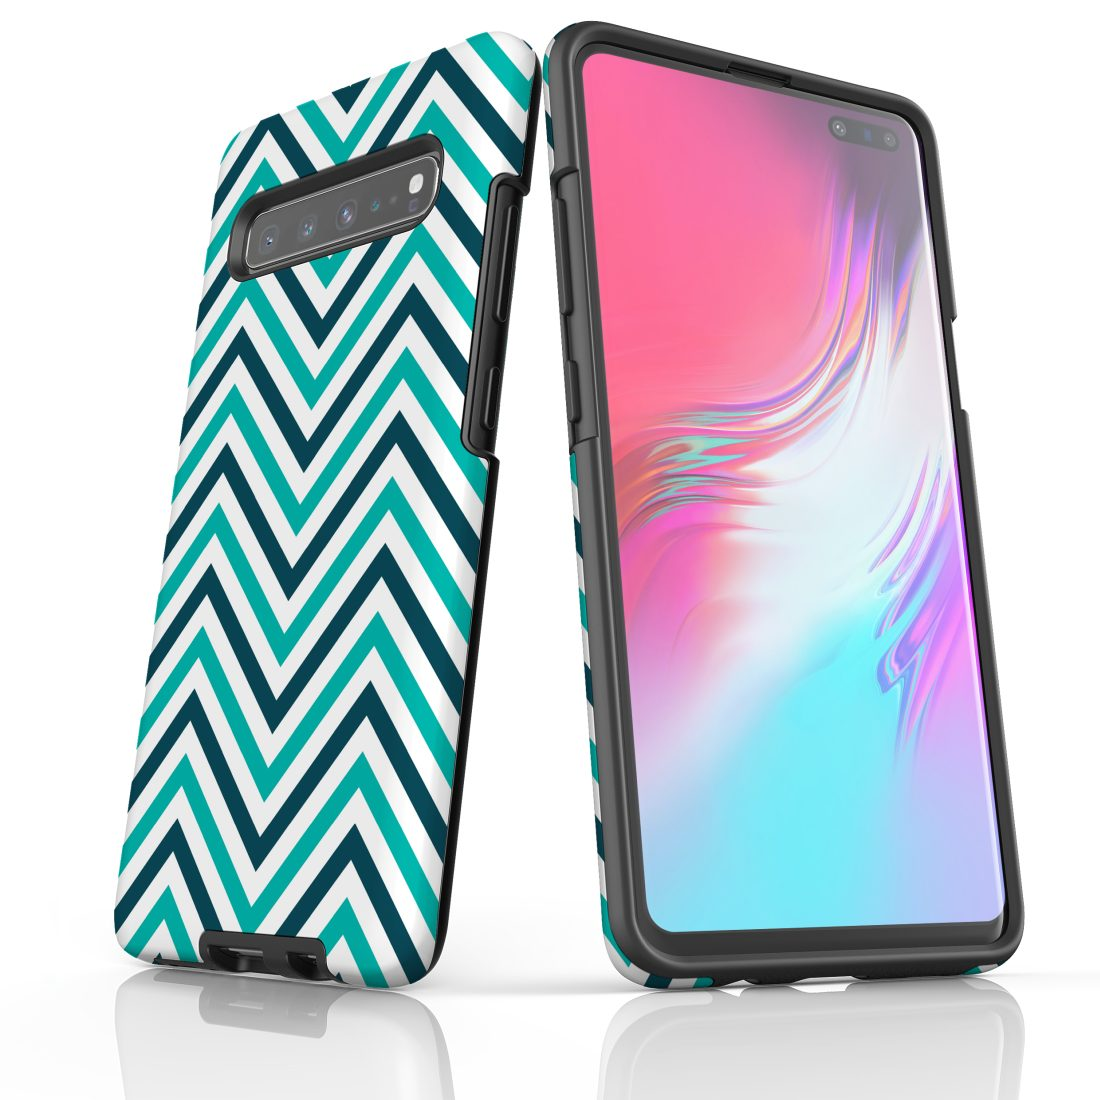 For Samsung Galaxy S10 5G Protective Case, Zigzag Turquoise